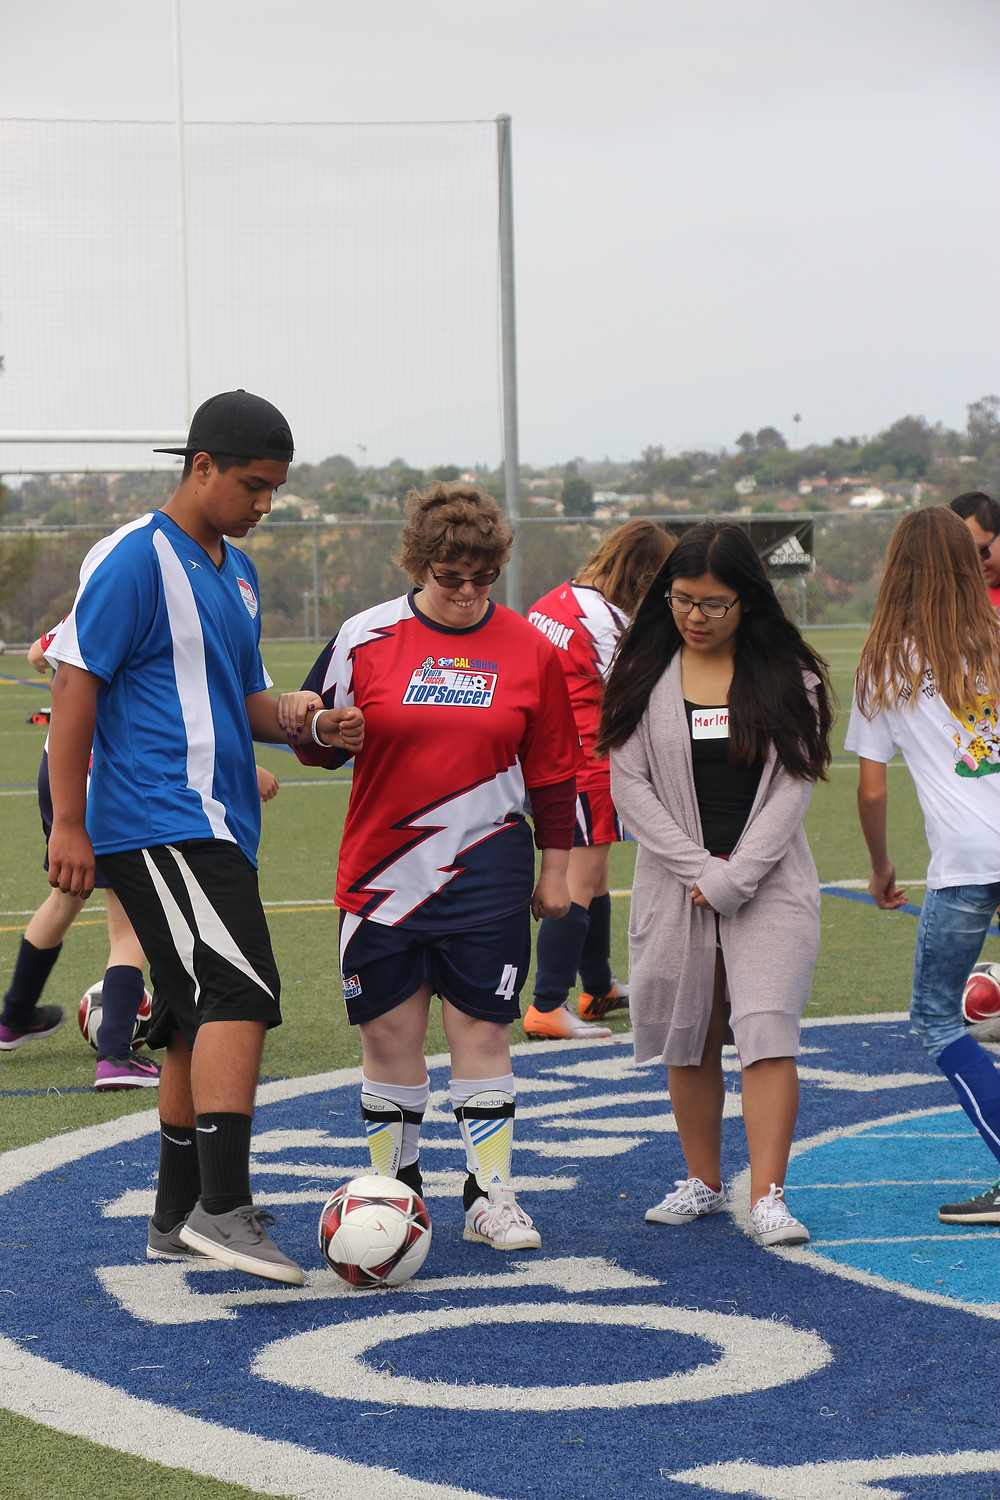 Luis helps a Vista athlete dribble during an exercise.